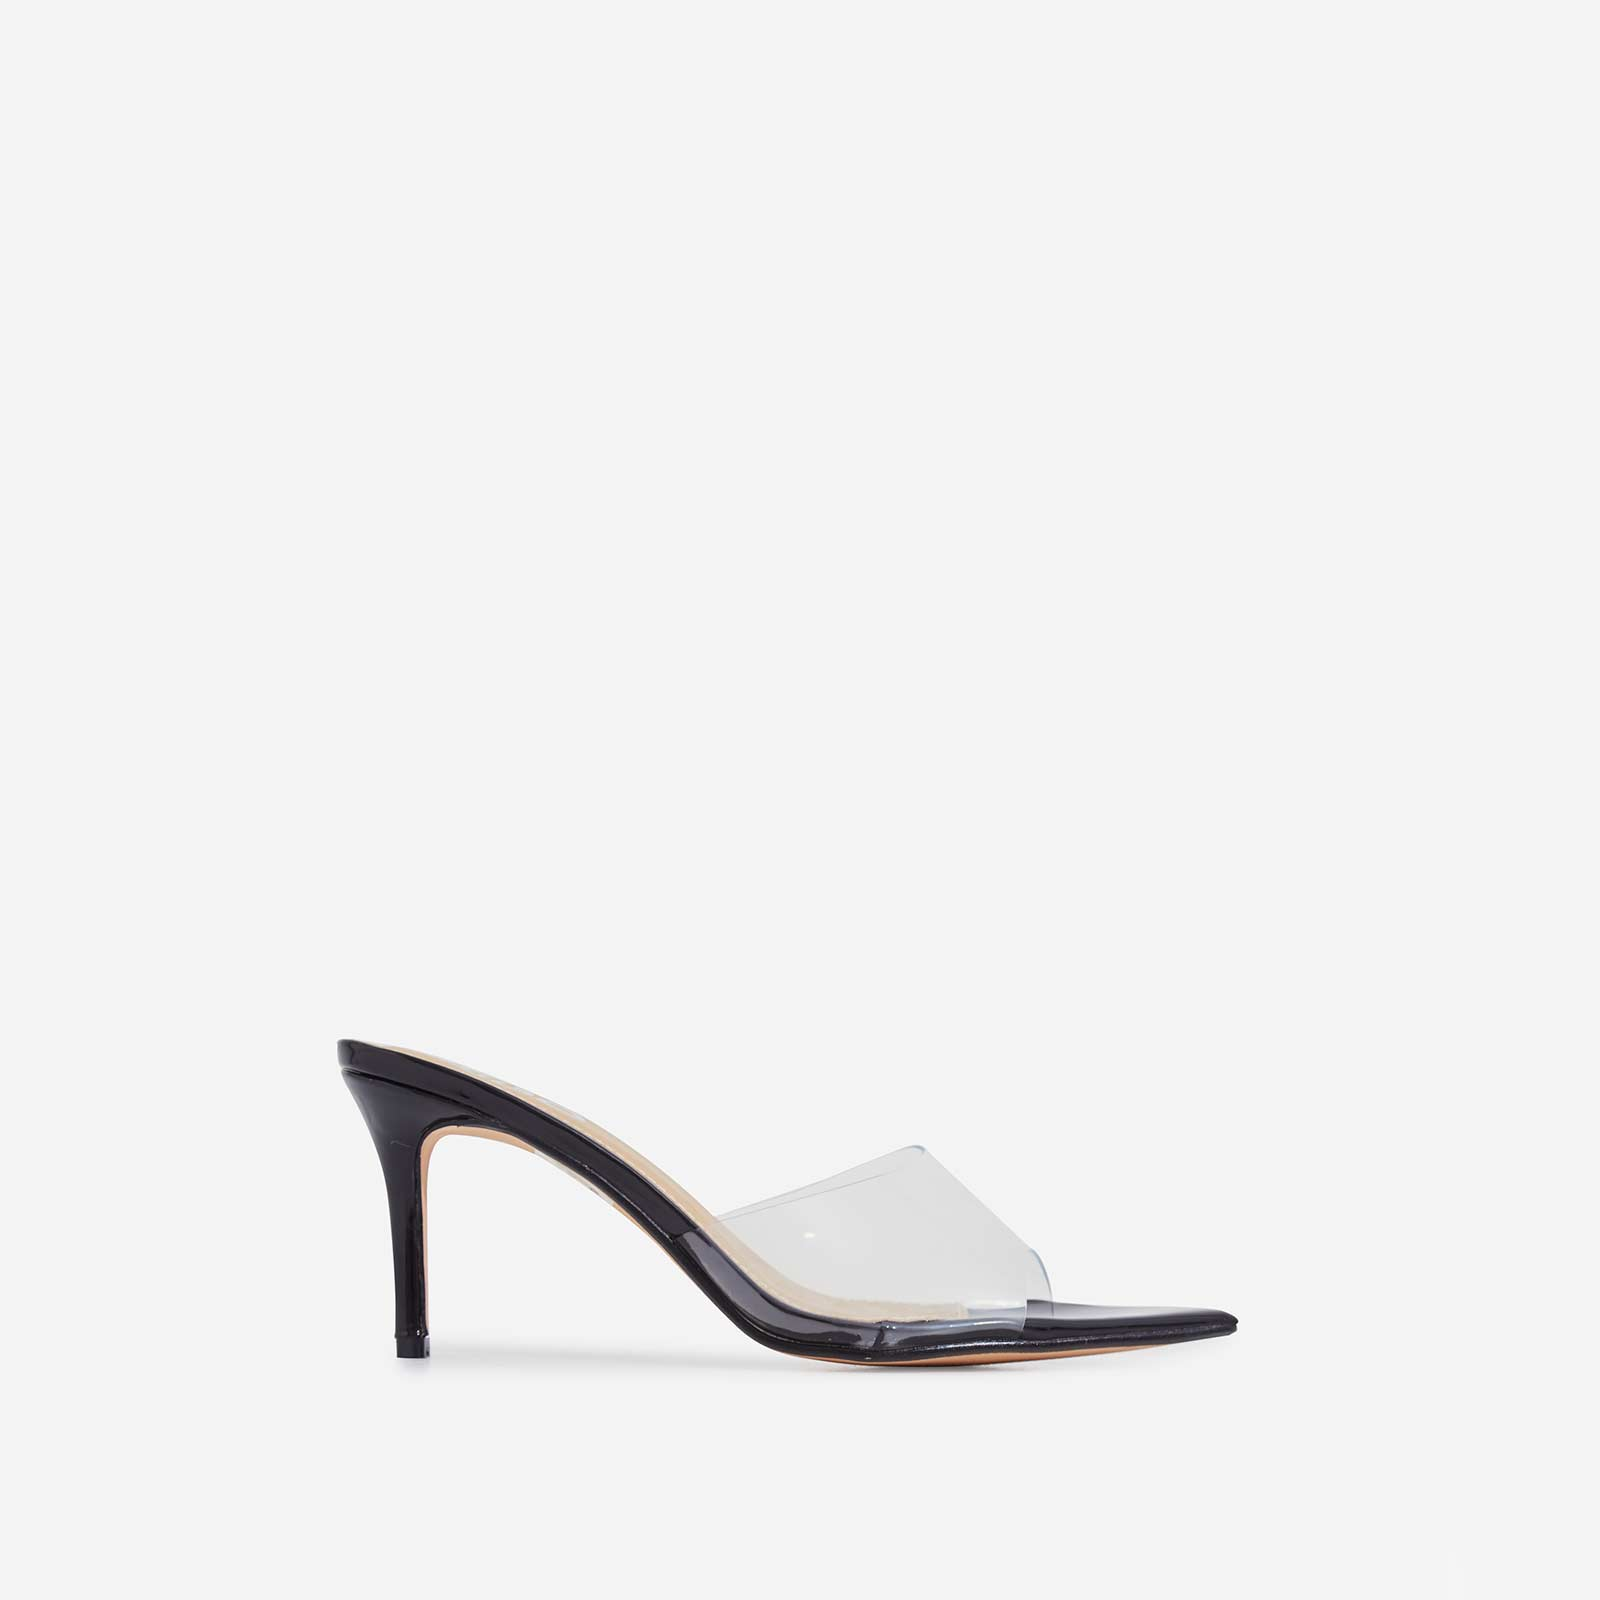 Maelle Pointed Peep Toe Perspex Heel Mule In Black Patent